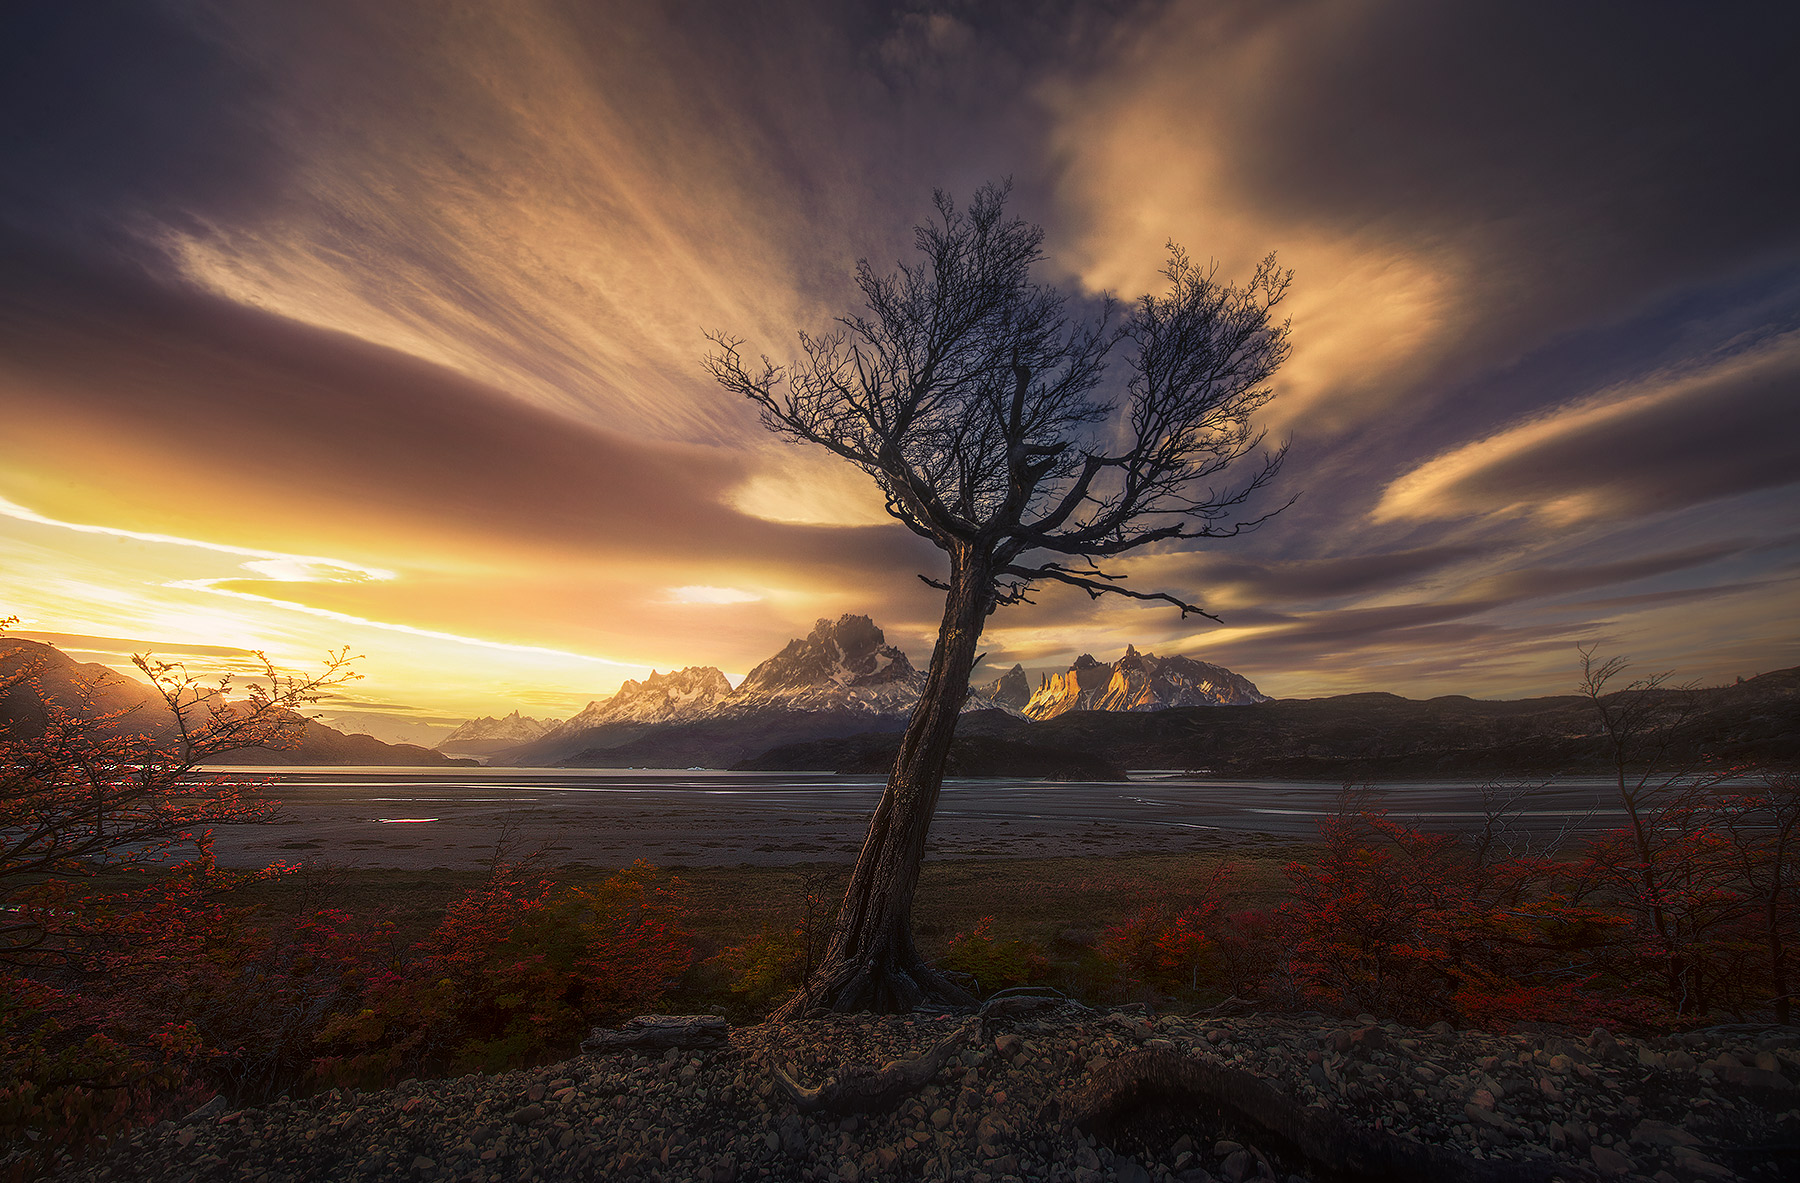 torres del Paine, horns, dead tree, gnarled, lone tree, lenticular, autumn, Chile, Lago grey , photo